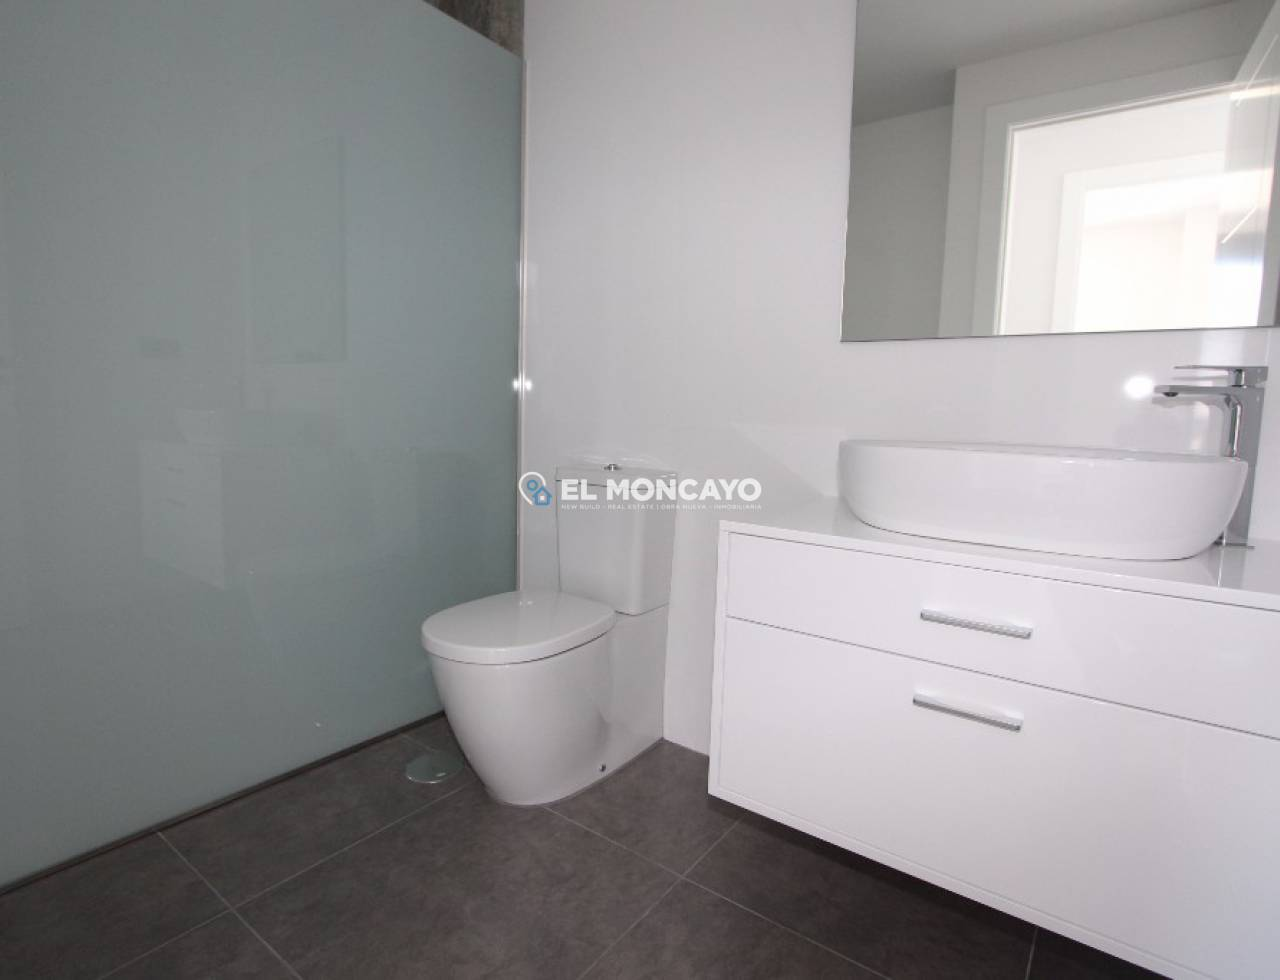 Penthouse duplex in Villamartín - Orihuela Costa (Costa Blanca South) 119 (15)